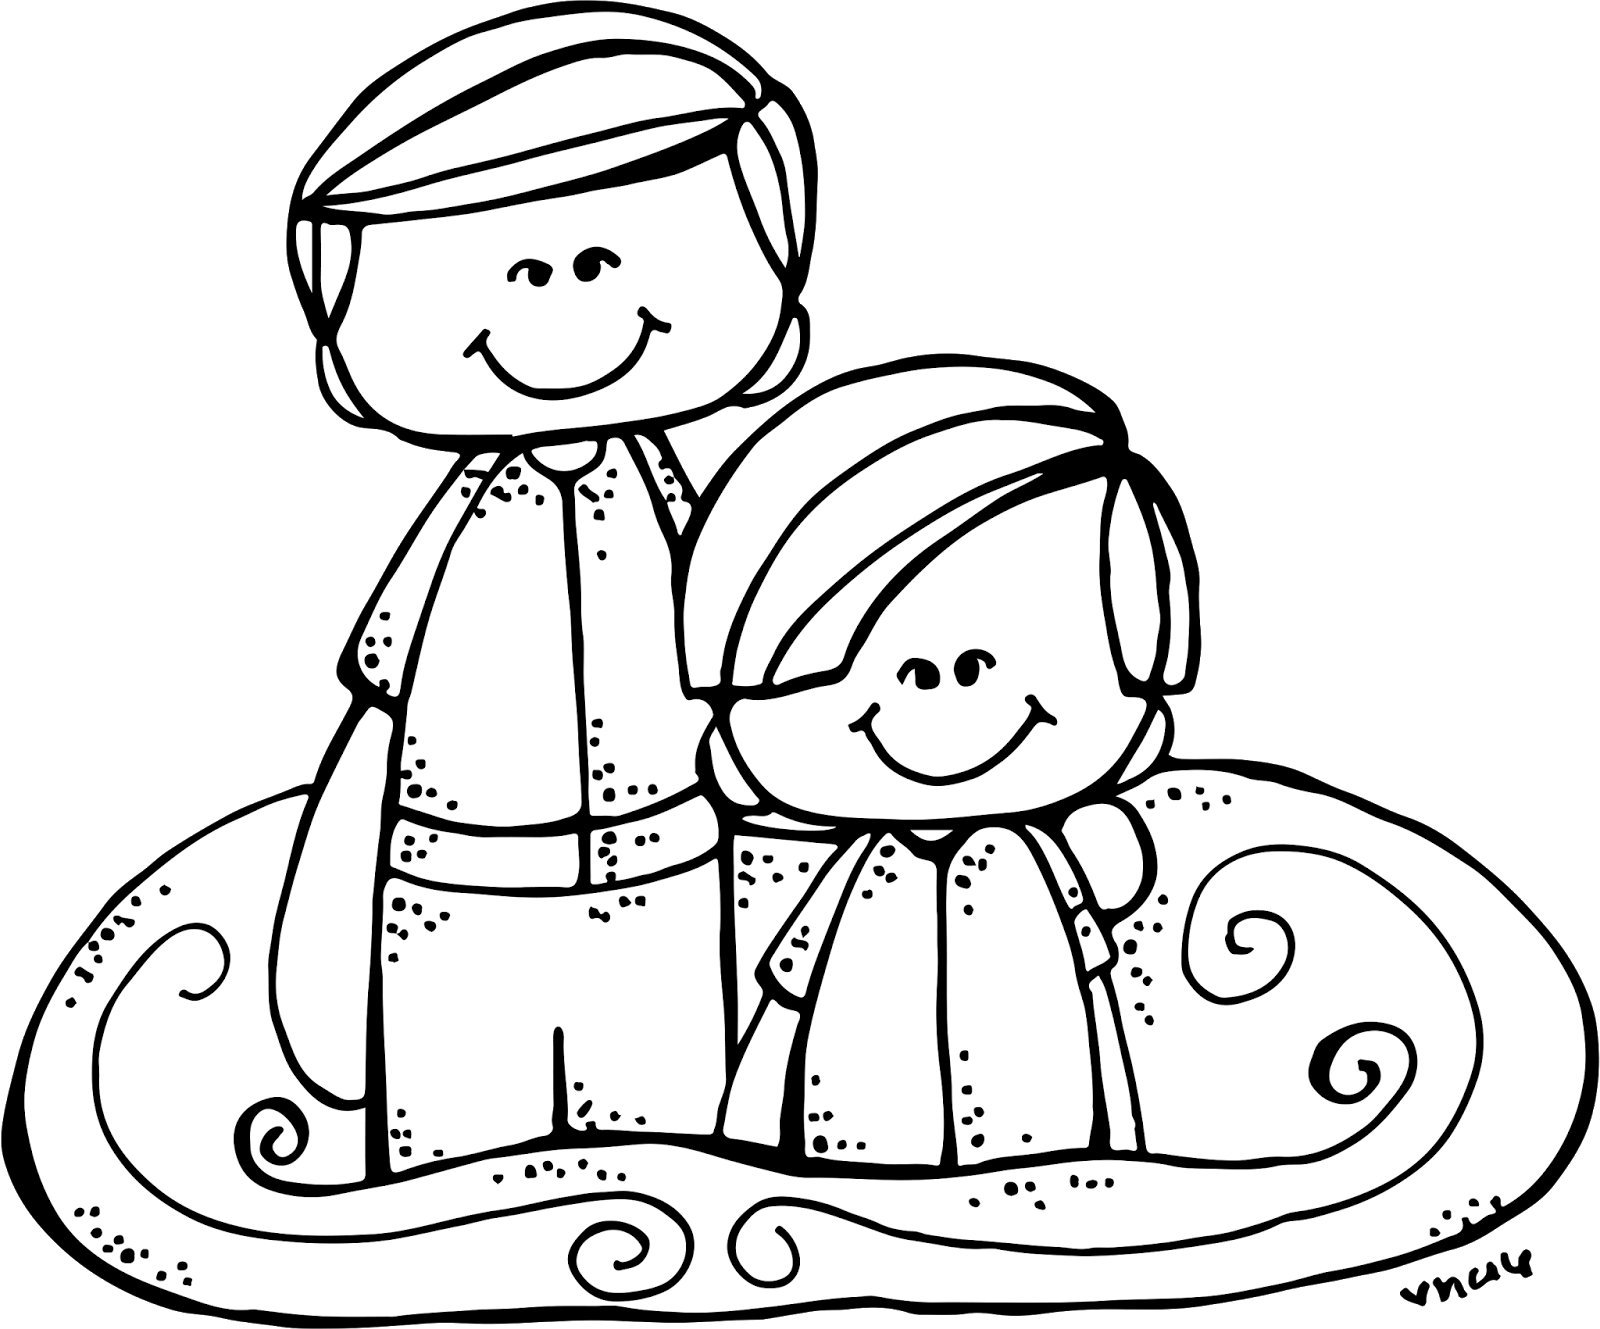 I was able to. Lds clipart drawing